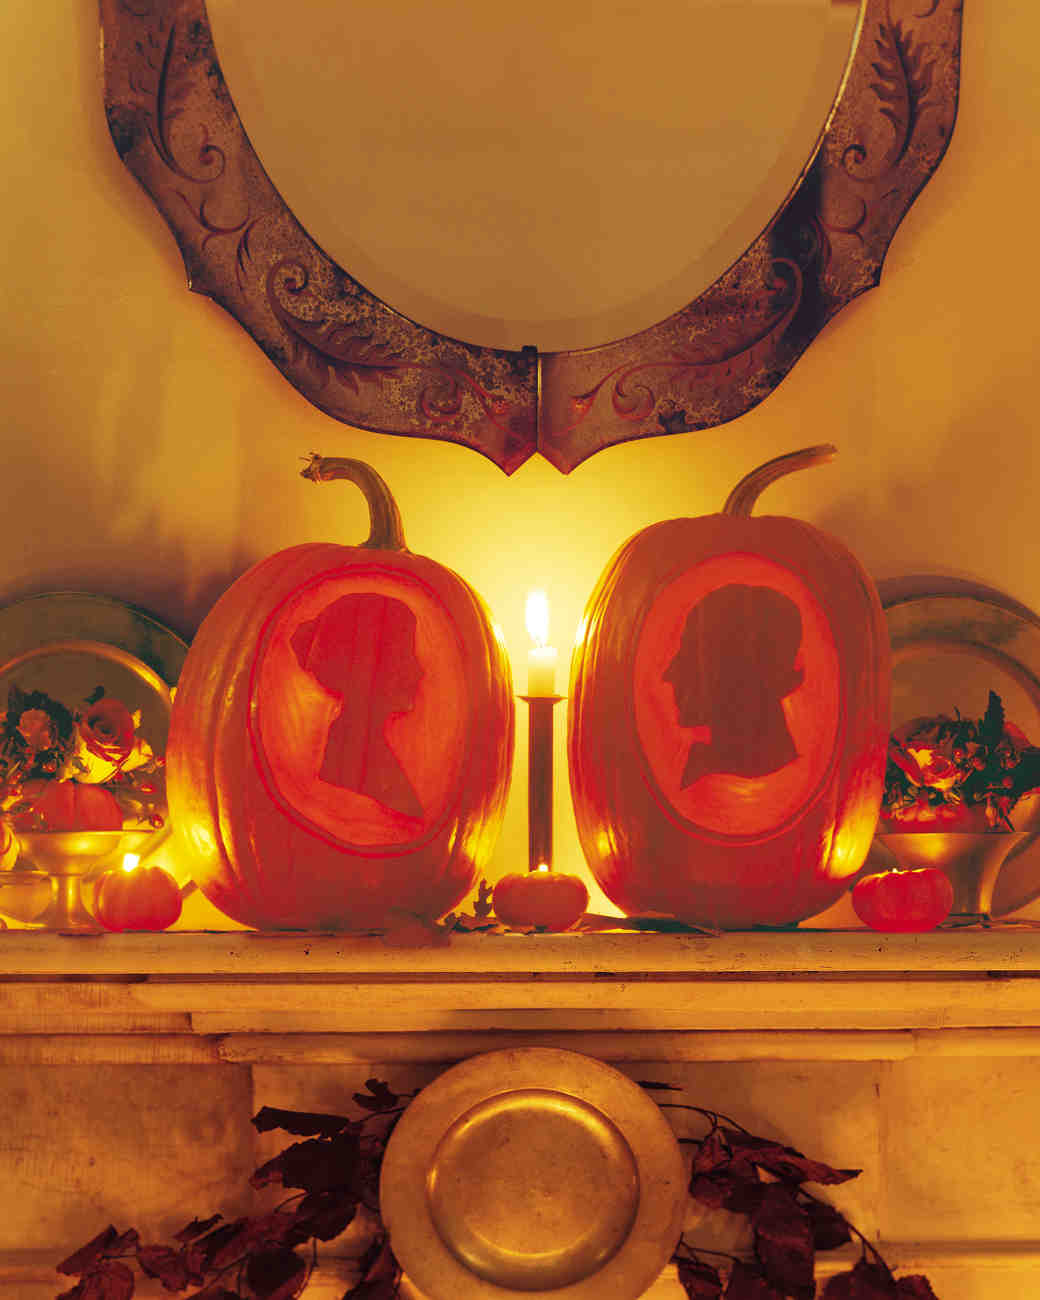 Pumpkins with Bride and Groom Silhouette Carvings